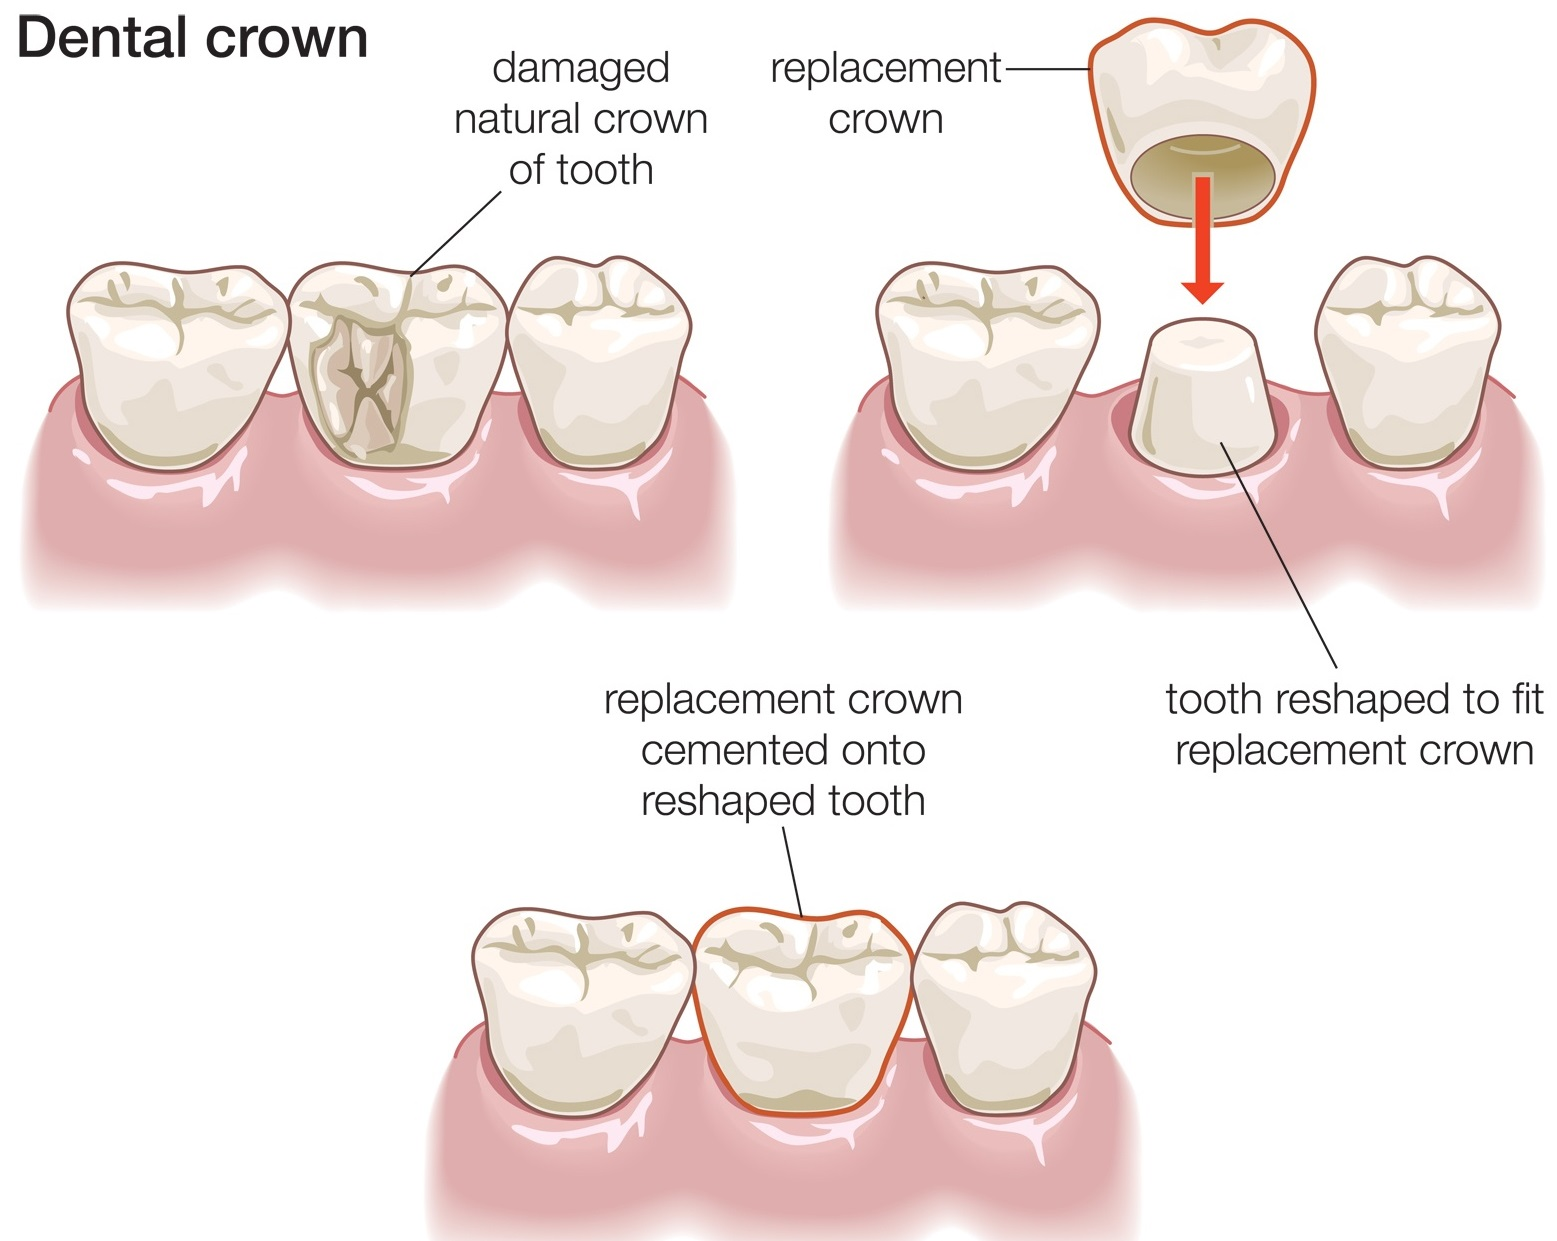 We are the best dentistry for dental crowns in Sydney CBD.